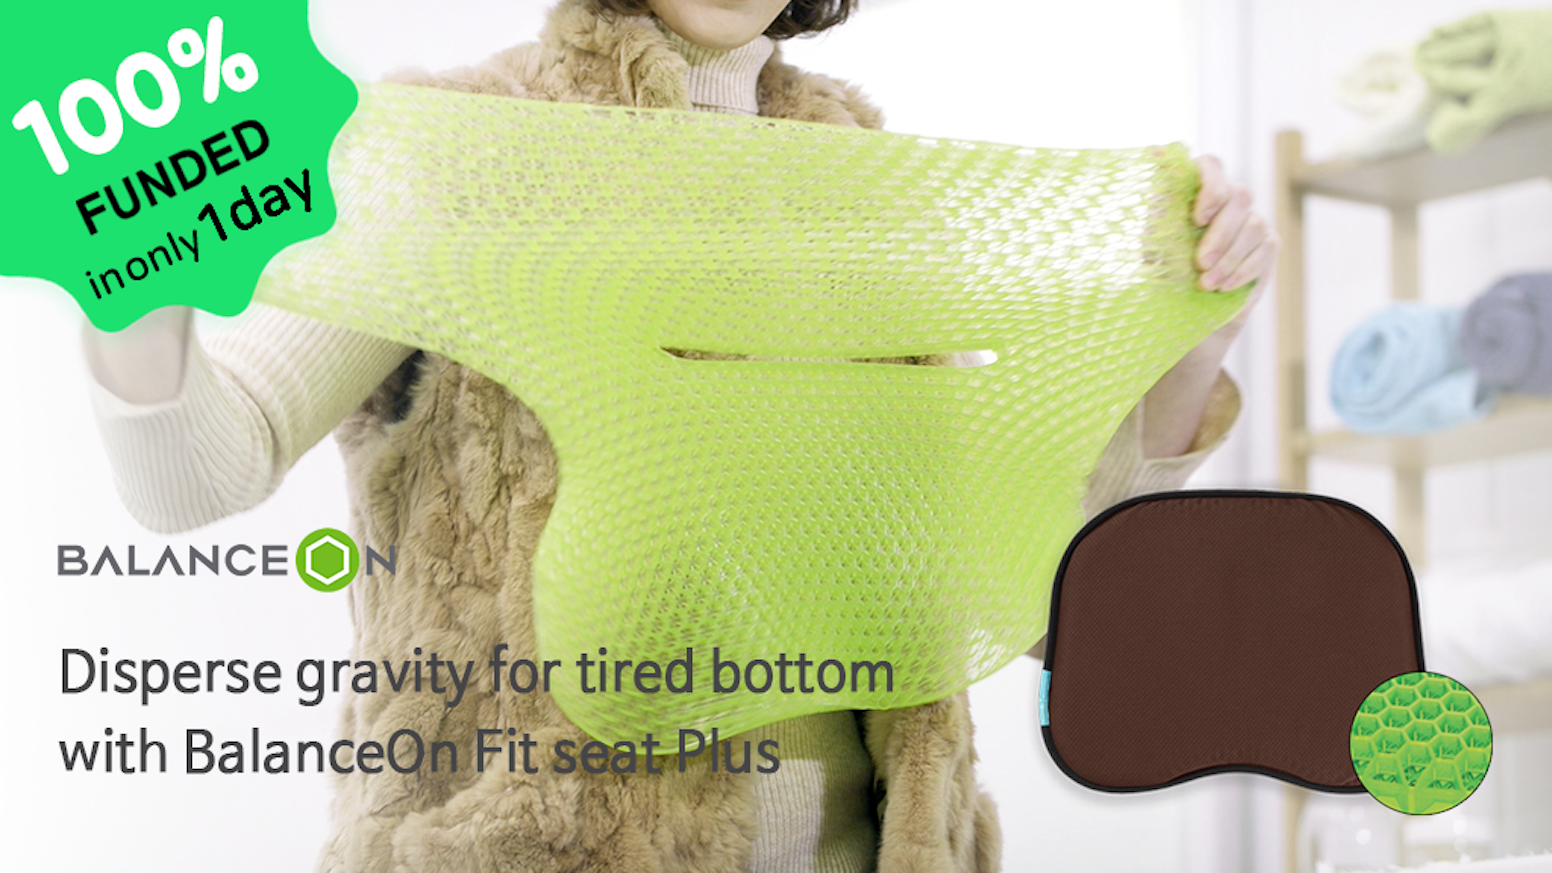 Ergonomically designed for correcting body posture, let's save our bottoms with BalanceOn Fit Seat Plus!